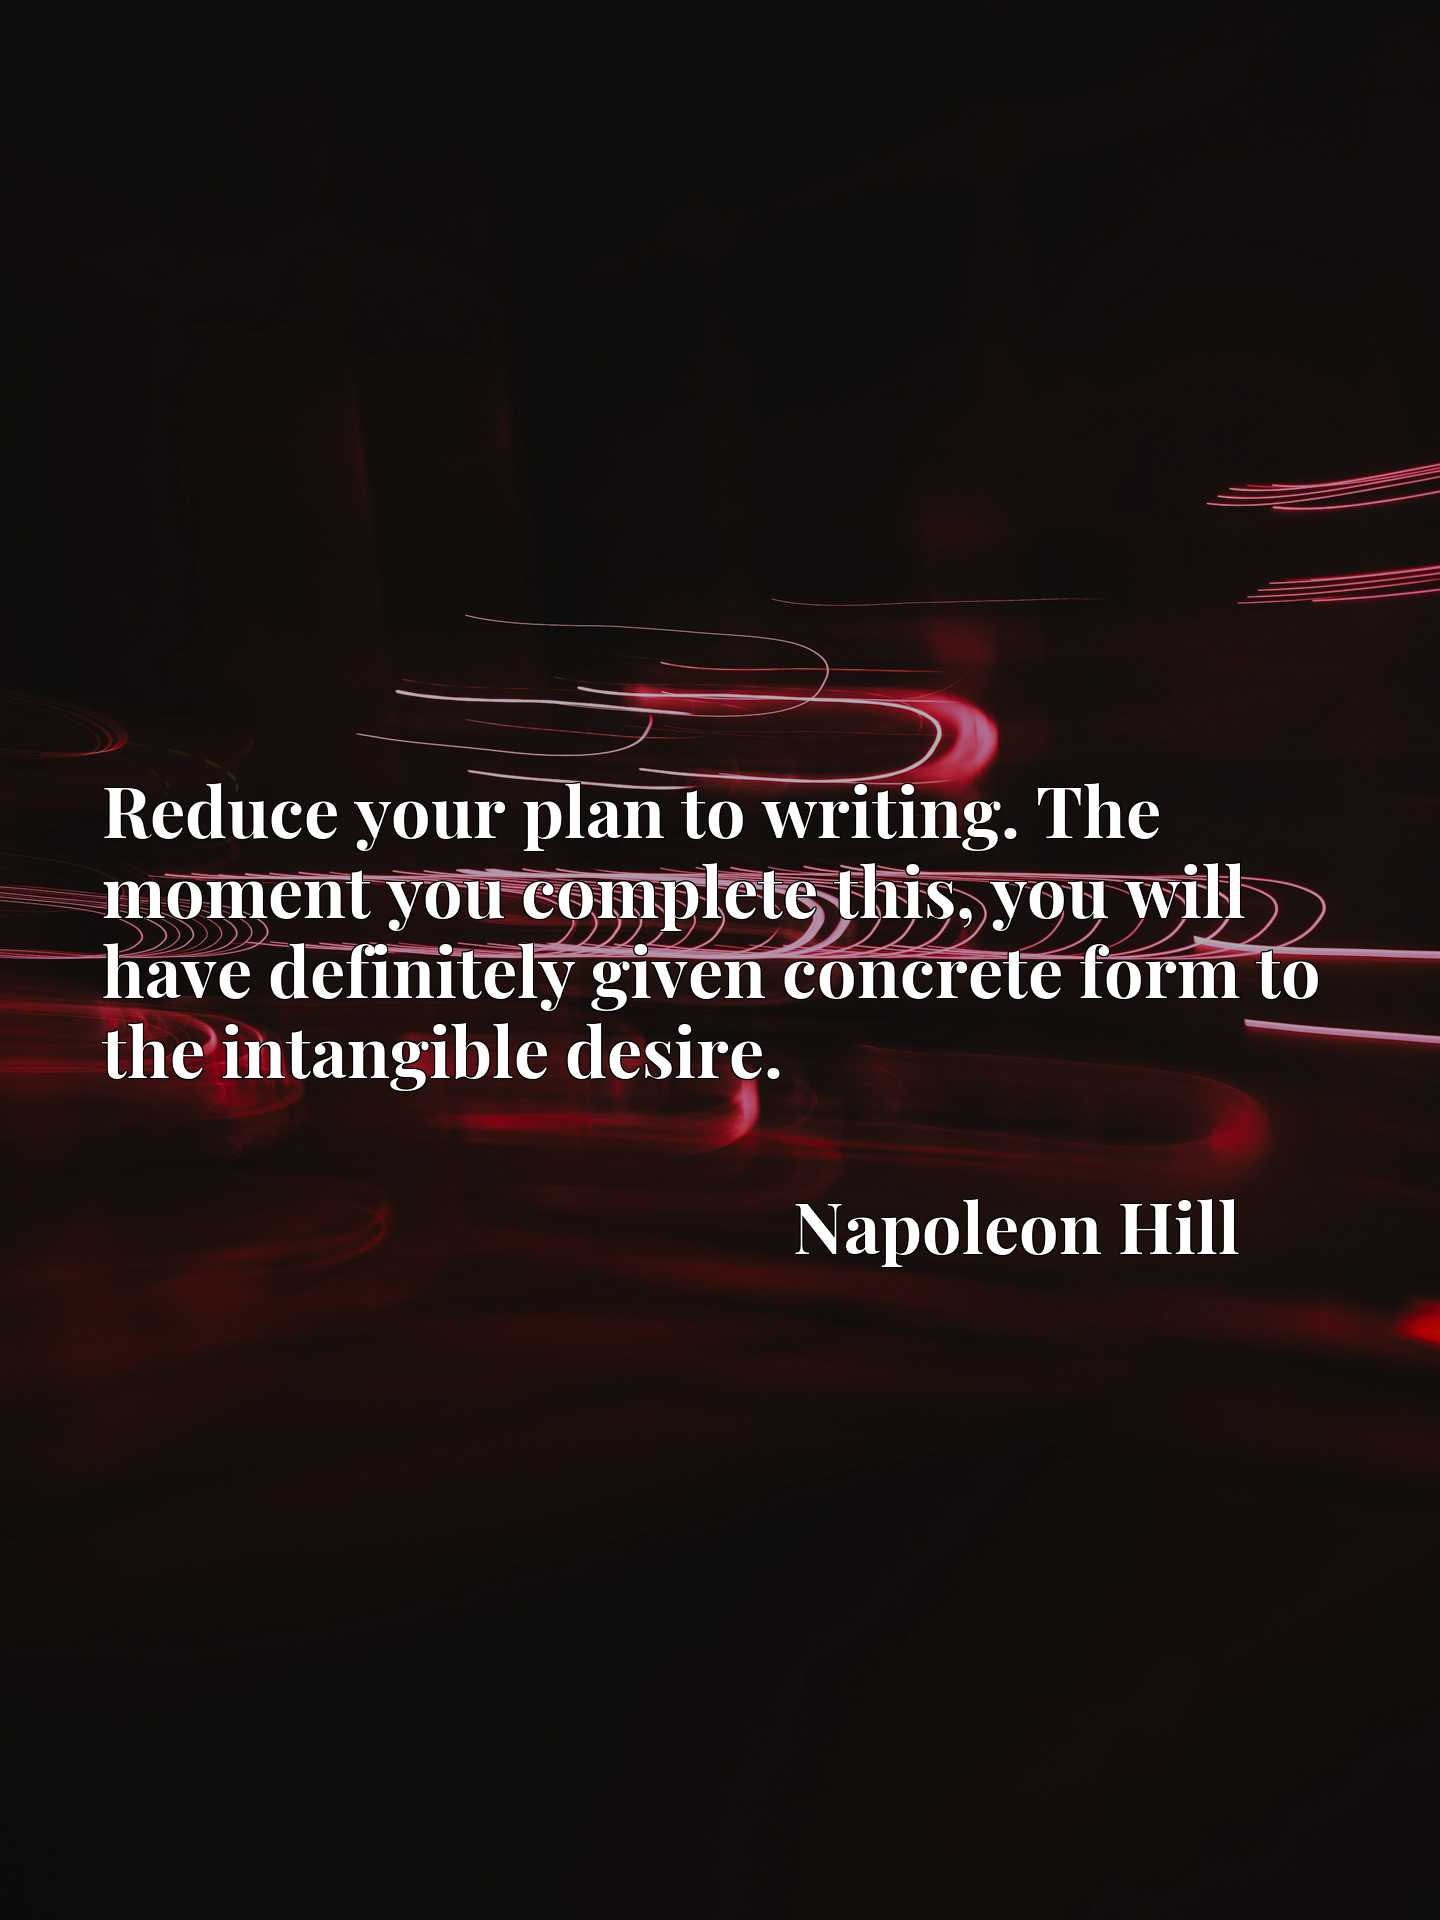 Quote Picture :Reduce your plan to writing. The moment you complete this, you will have definitely given concrete form to the intangible desire.